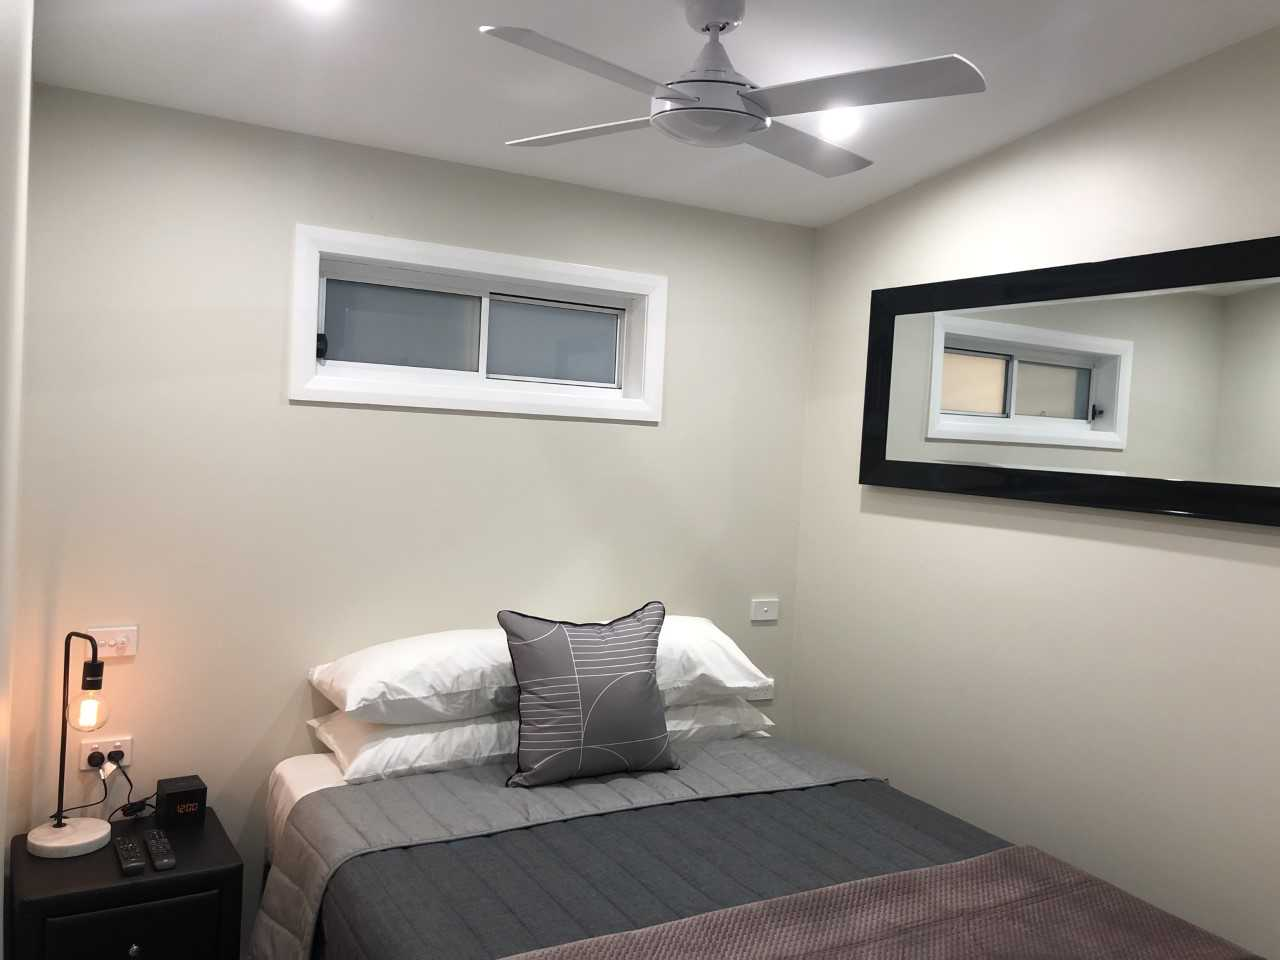 Callaghan Cottages - https://www.newcastleapartments.com.au/wp-content/uploads/2020/02/mirror.jpg